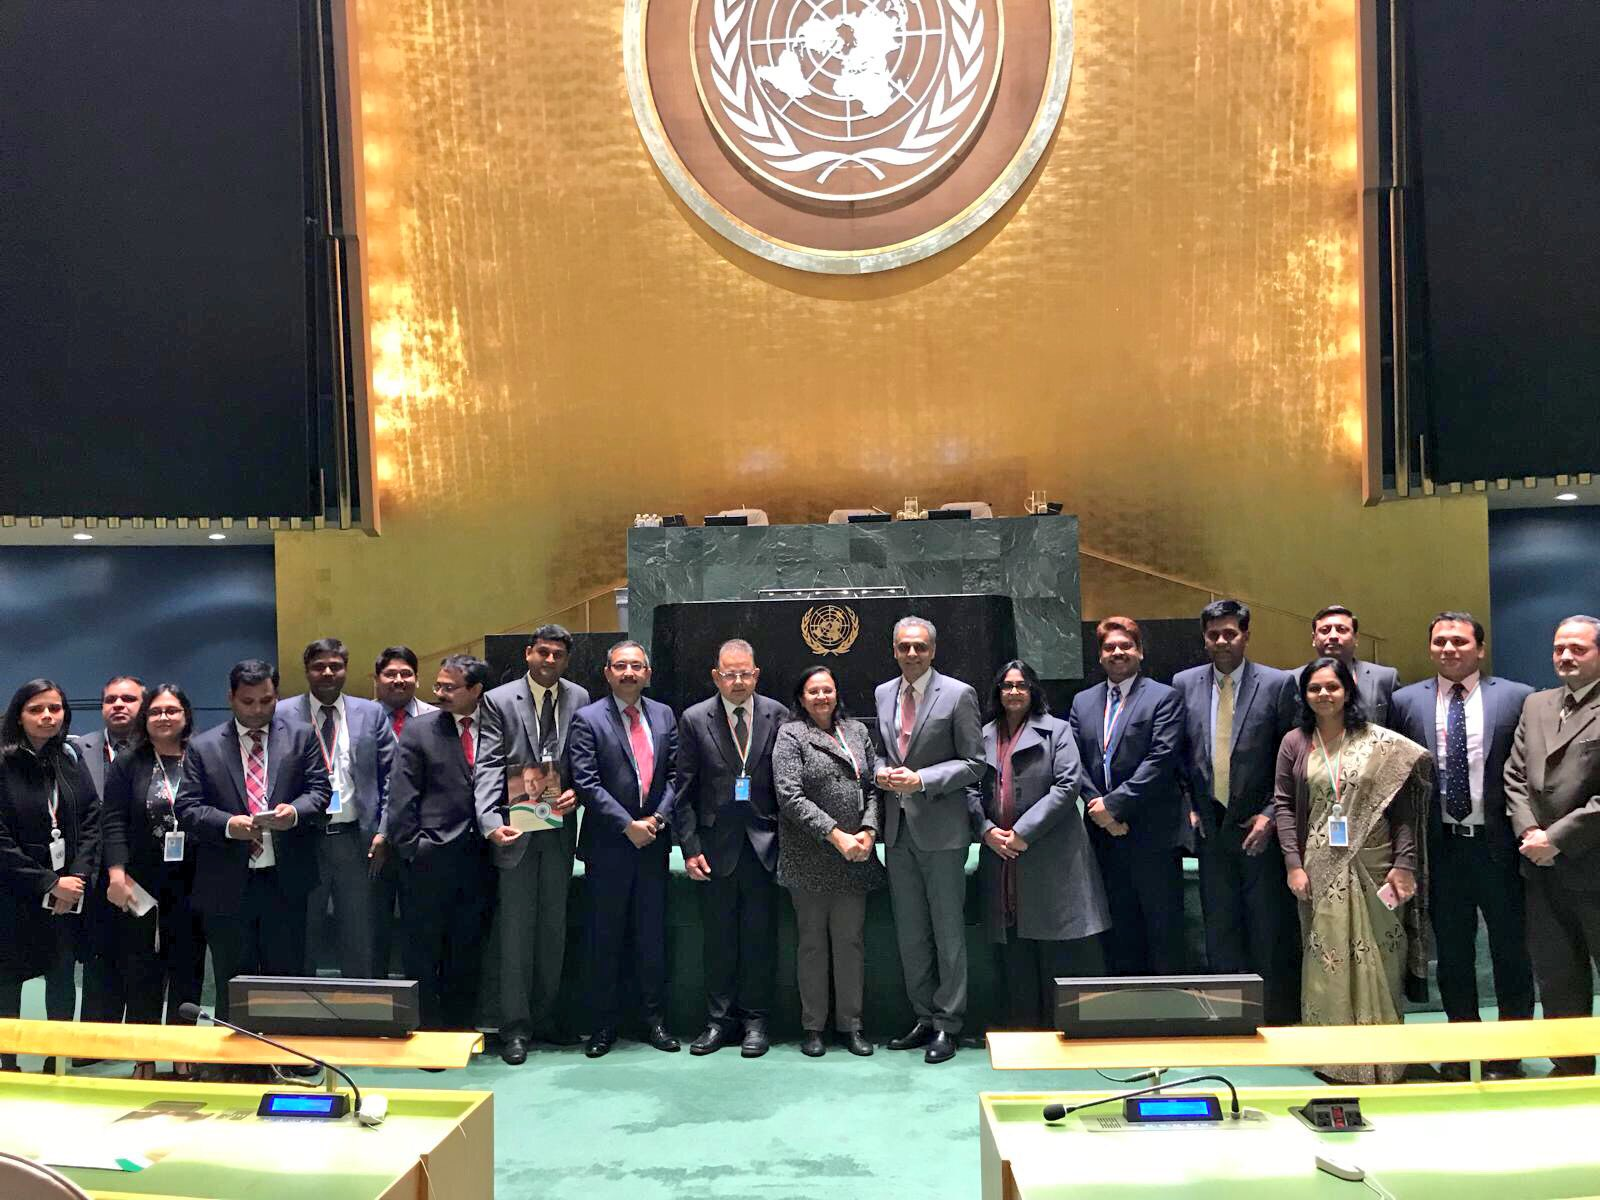 India's Permanent Representative to the UN Syed Akbaruddin (eight from right) and others seen with Judge Dalveer Bhandari (tenth from left) following Bhandari's reelection to the International Court of Justice. Credit: Twitter/Syed Akbaruddin